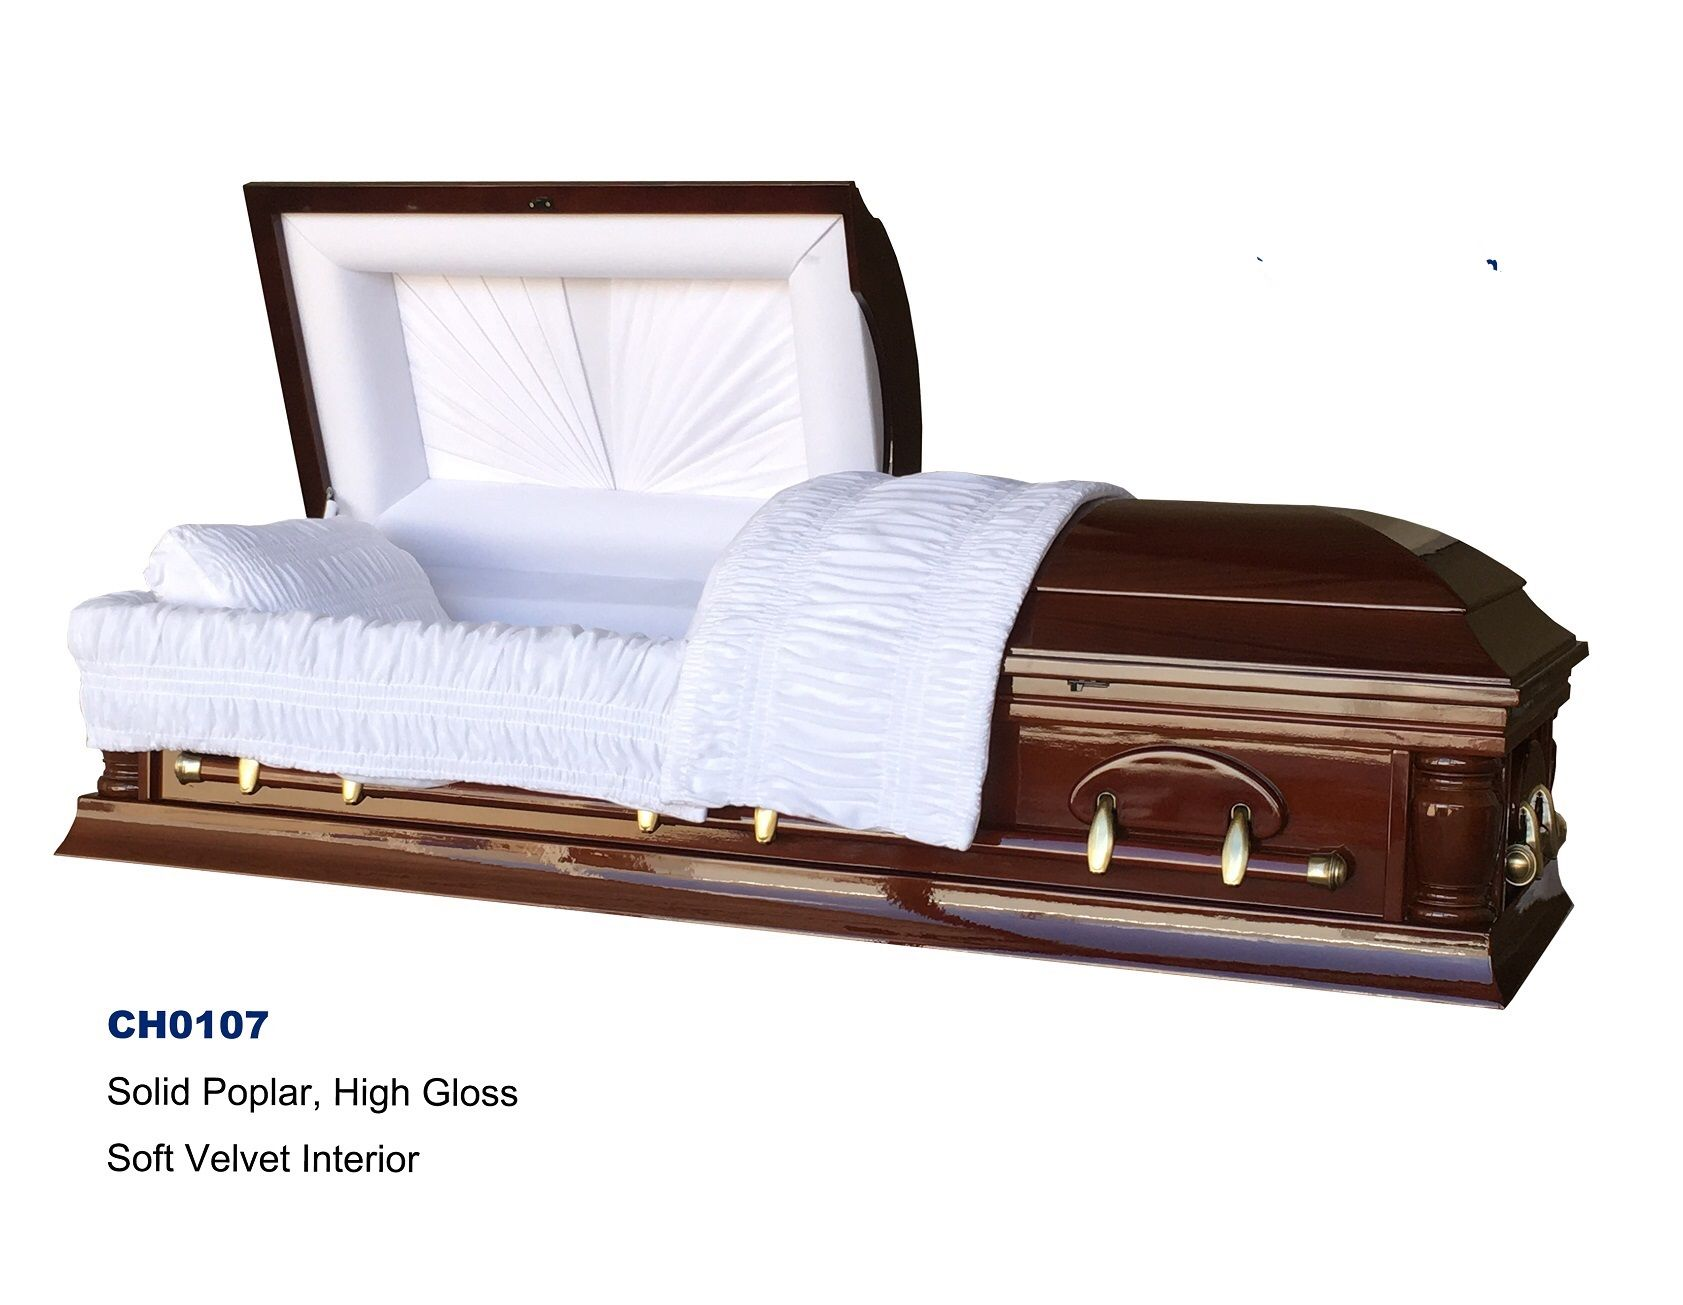 Pin by GFG Funeral Home on GFG Woods 2-3 day delivery | Pinterest ...